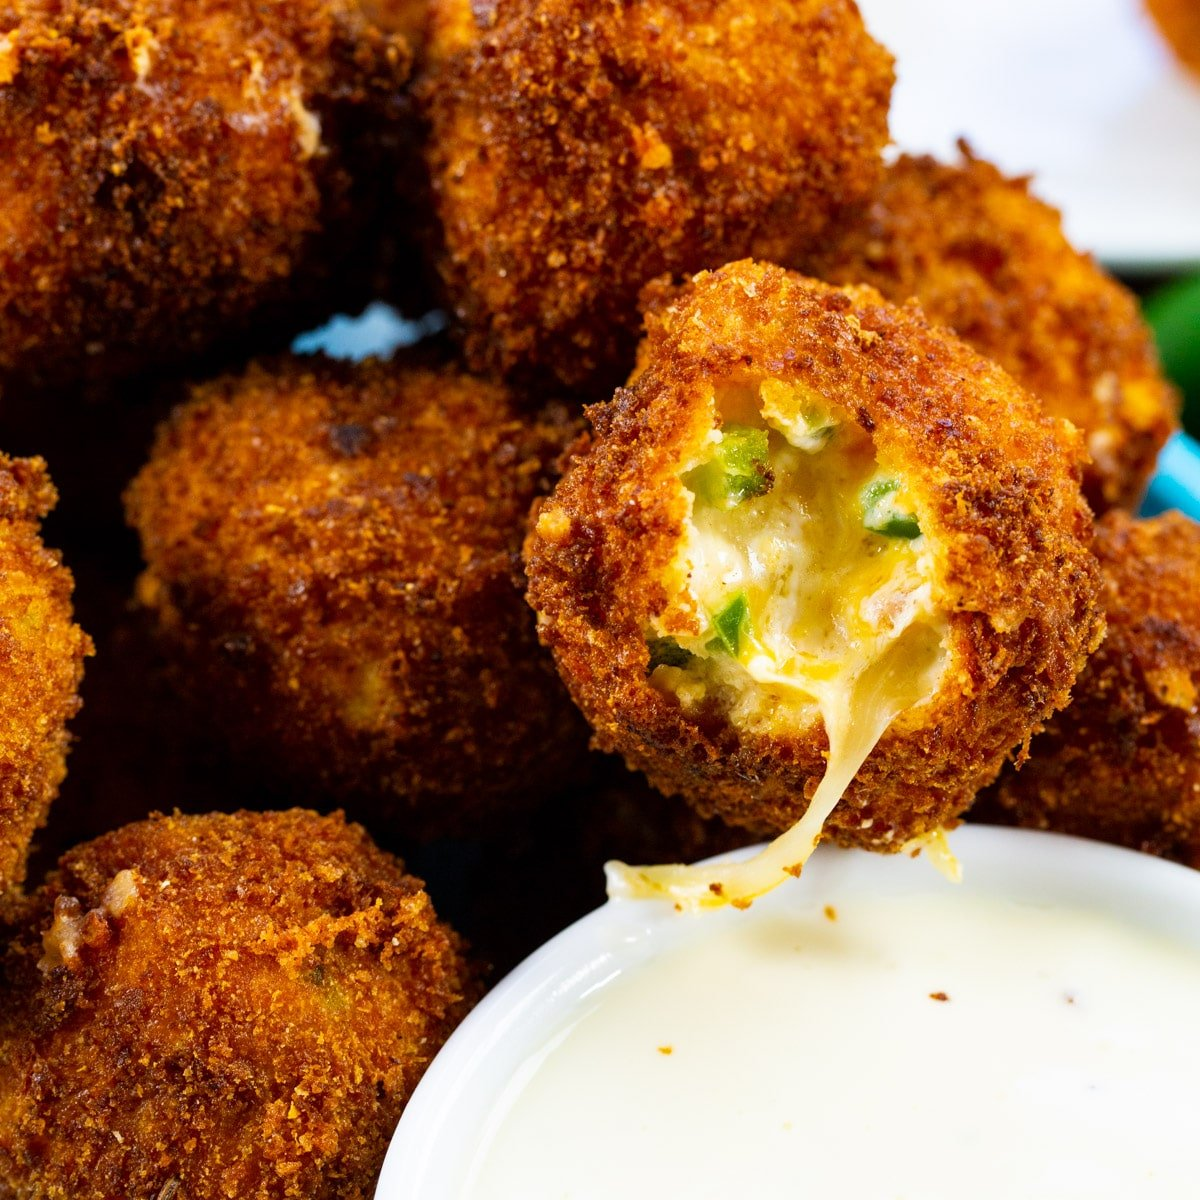 Fried Jalapeno Popper Bites with bite bitten out.